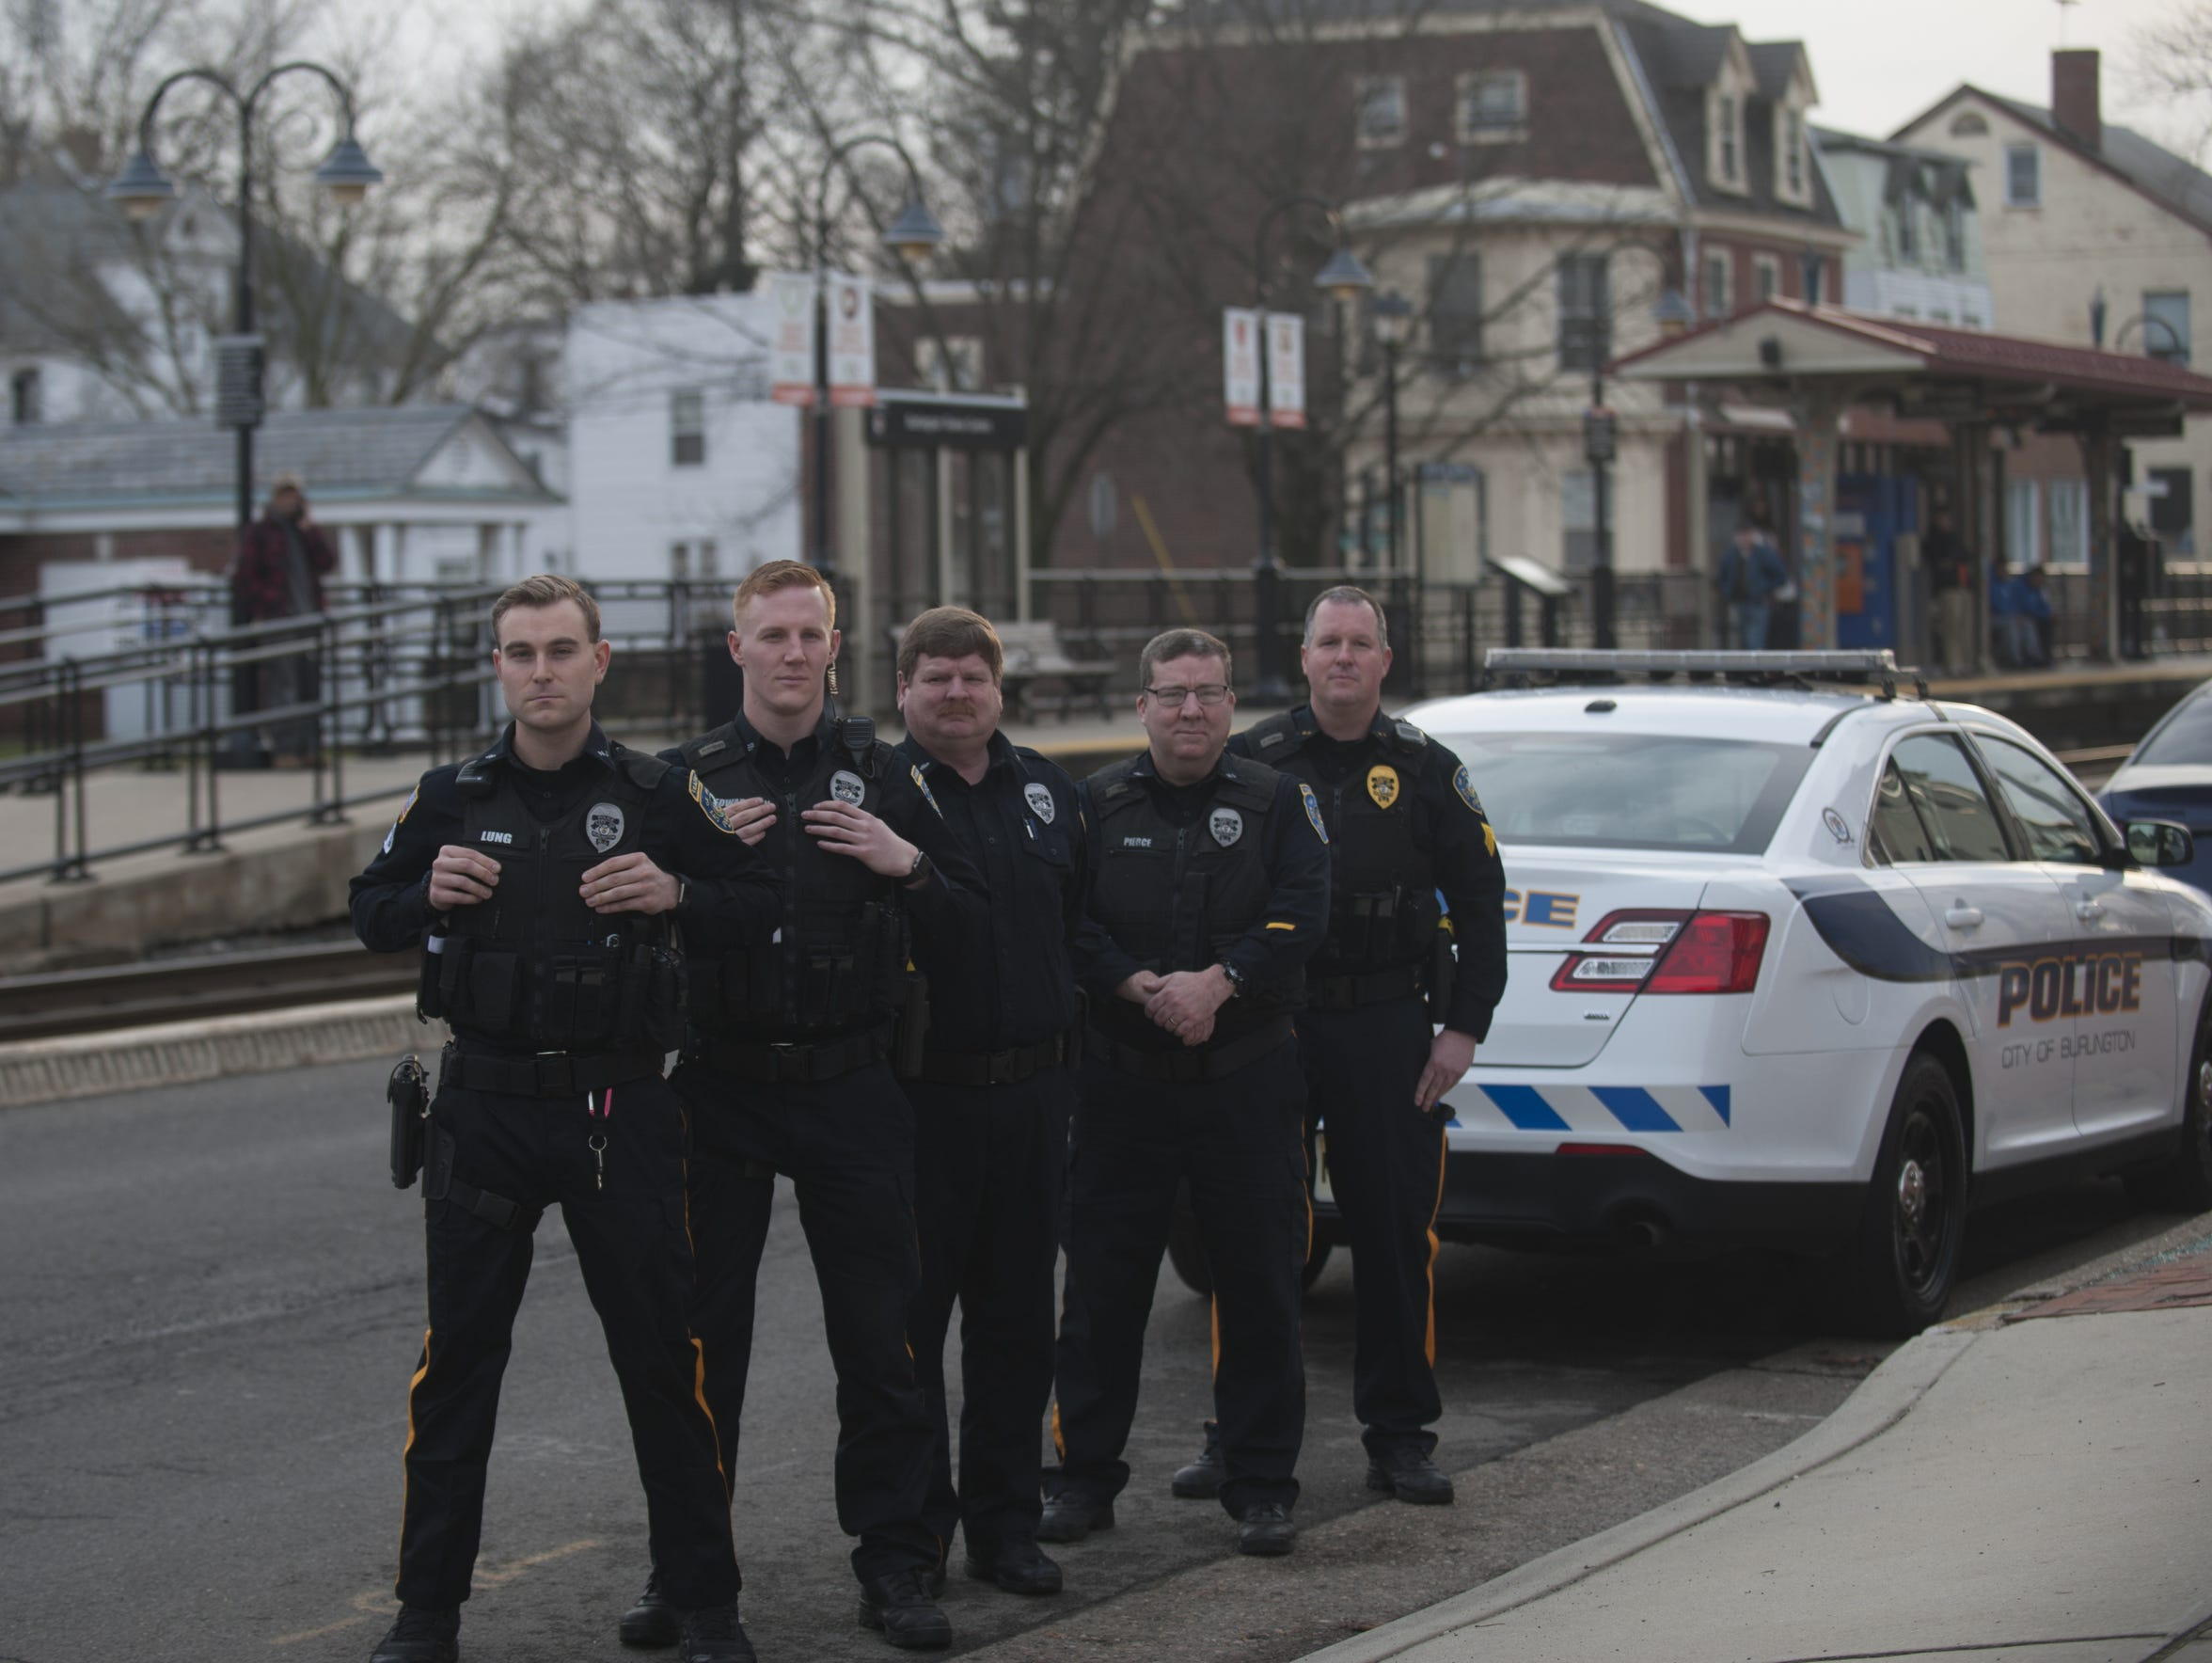 Burlington City police officers (from left) Cameron